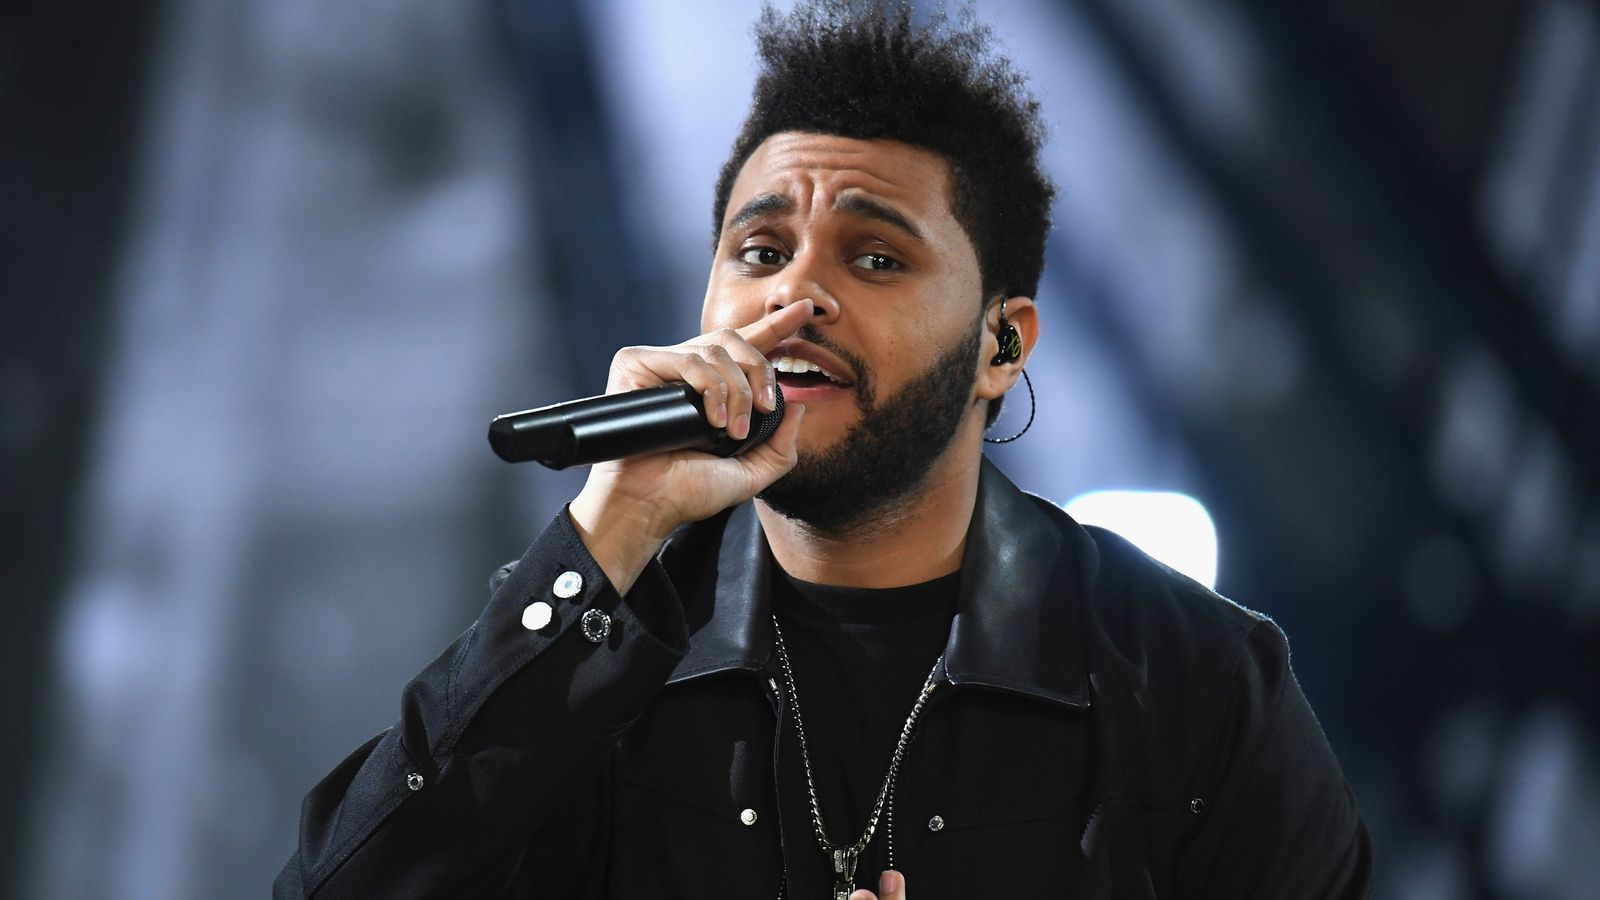 The Weeknd calls the Grammys 'corrupt' after nominations snub | Ents & Arts  News | Sky News